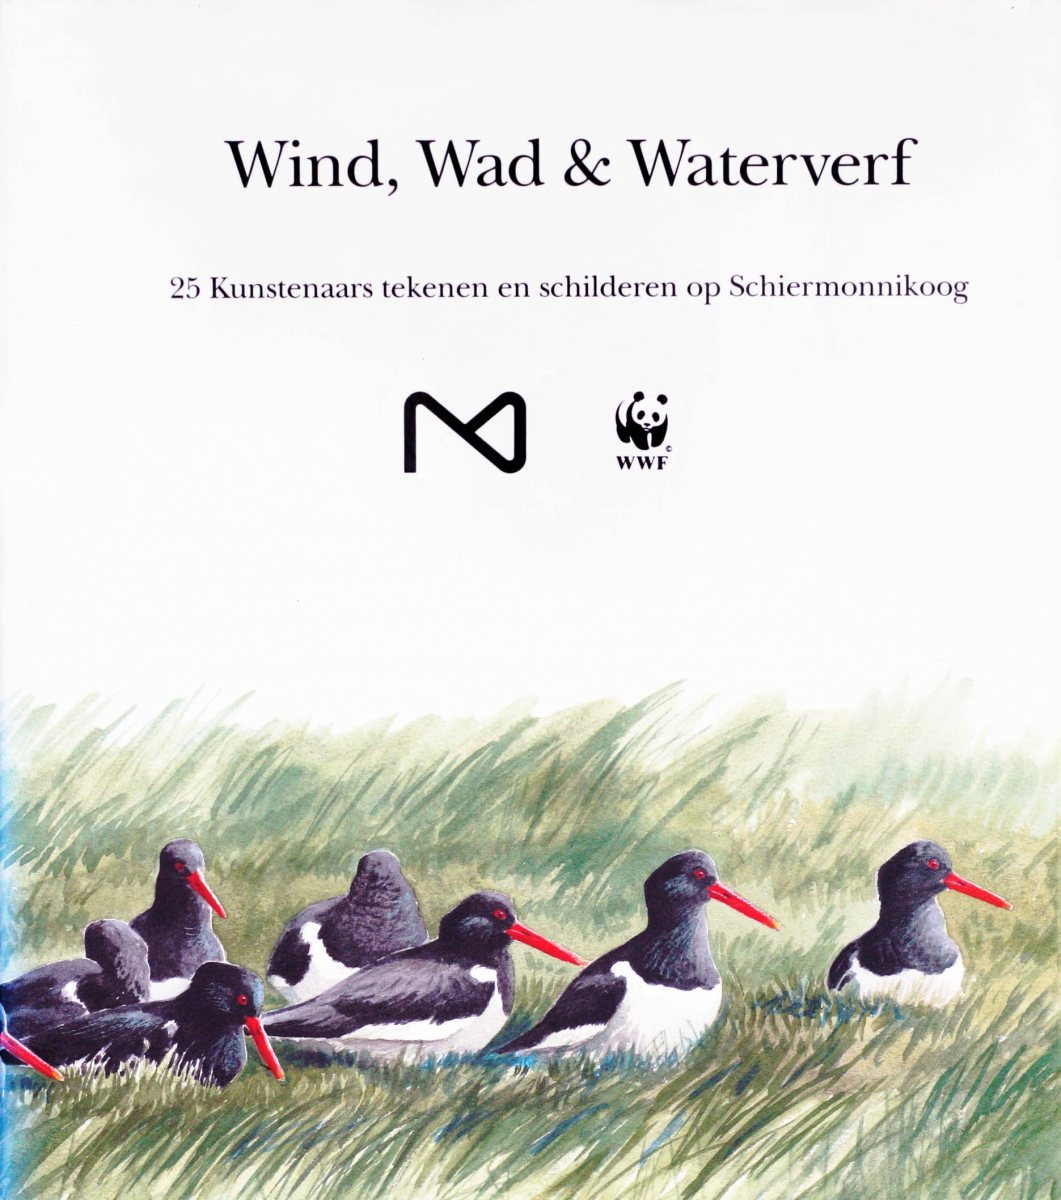 Wind-Wad-Waterverf-1992-cover